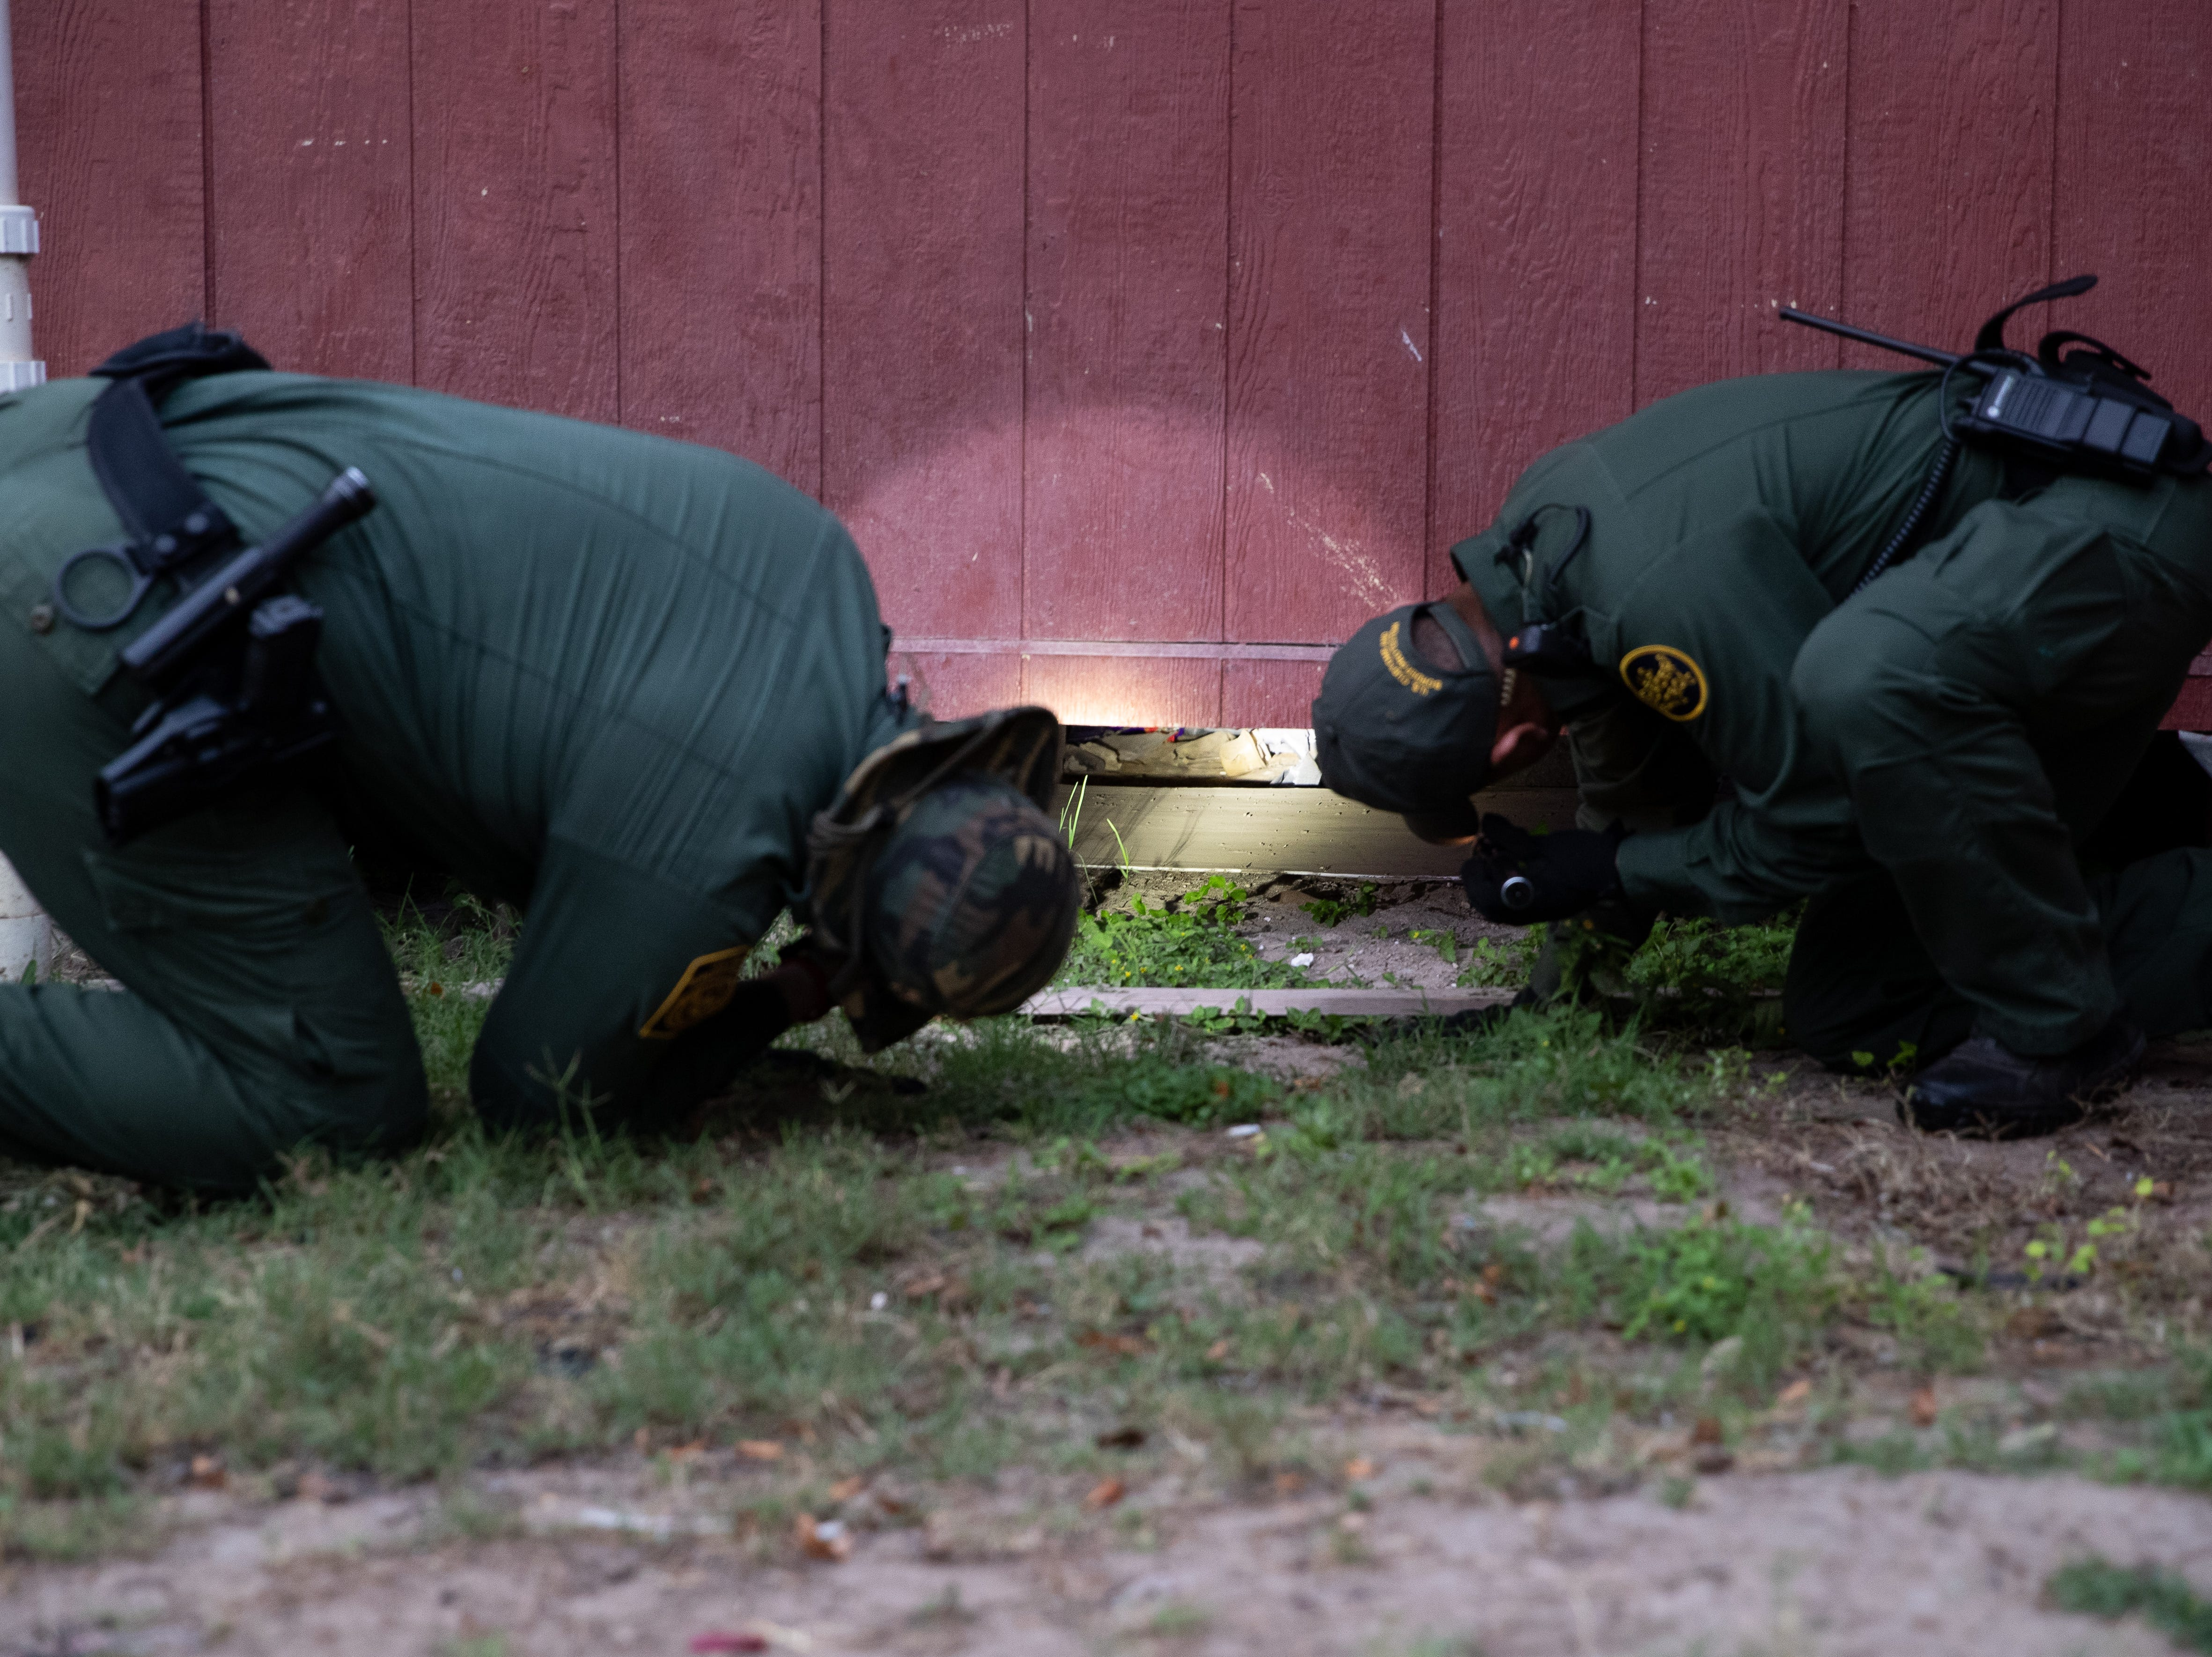 Border Patrol Agent's uses their flashlights to check underneath a home in Penitas, Texas, as they search an area after a camera spotted two migrants walking in the area on Tuesday, Feb. 26, 2019.